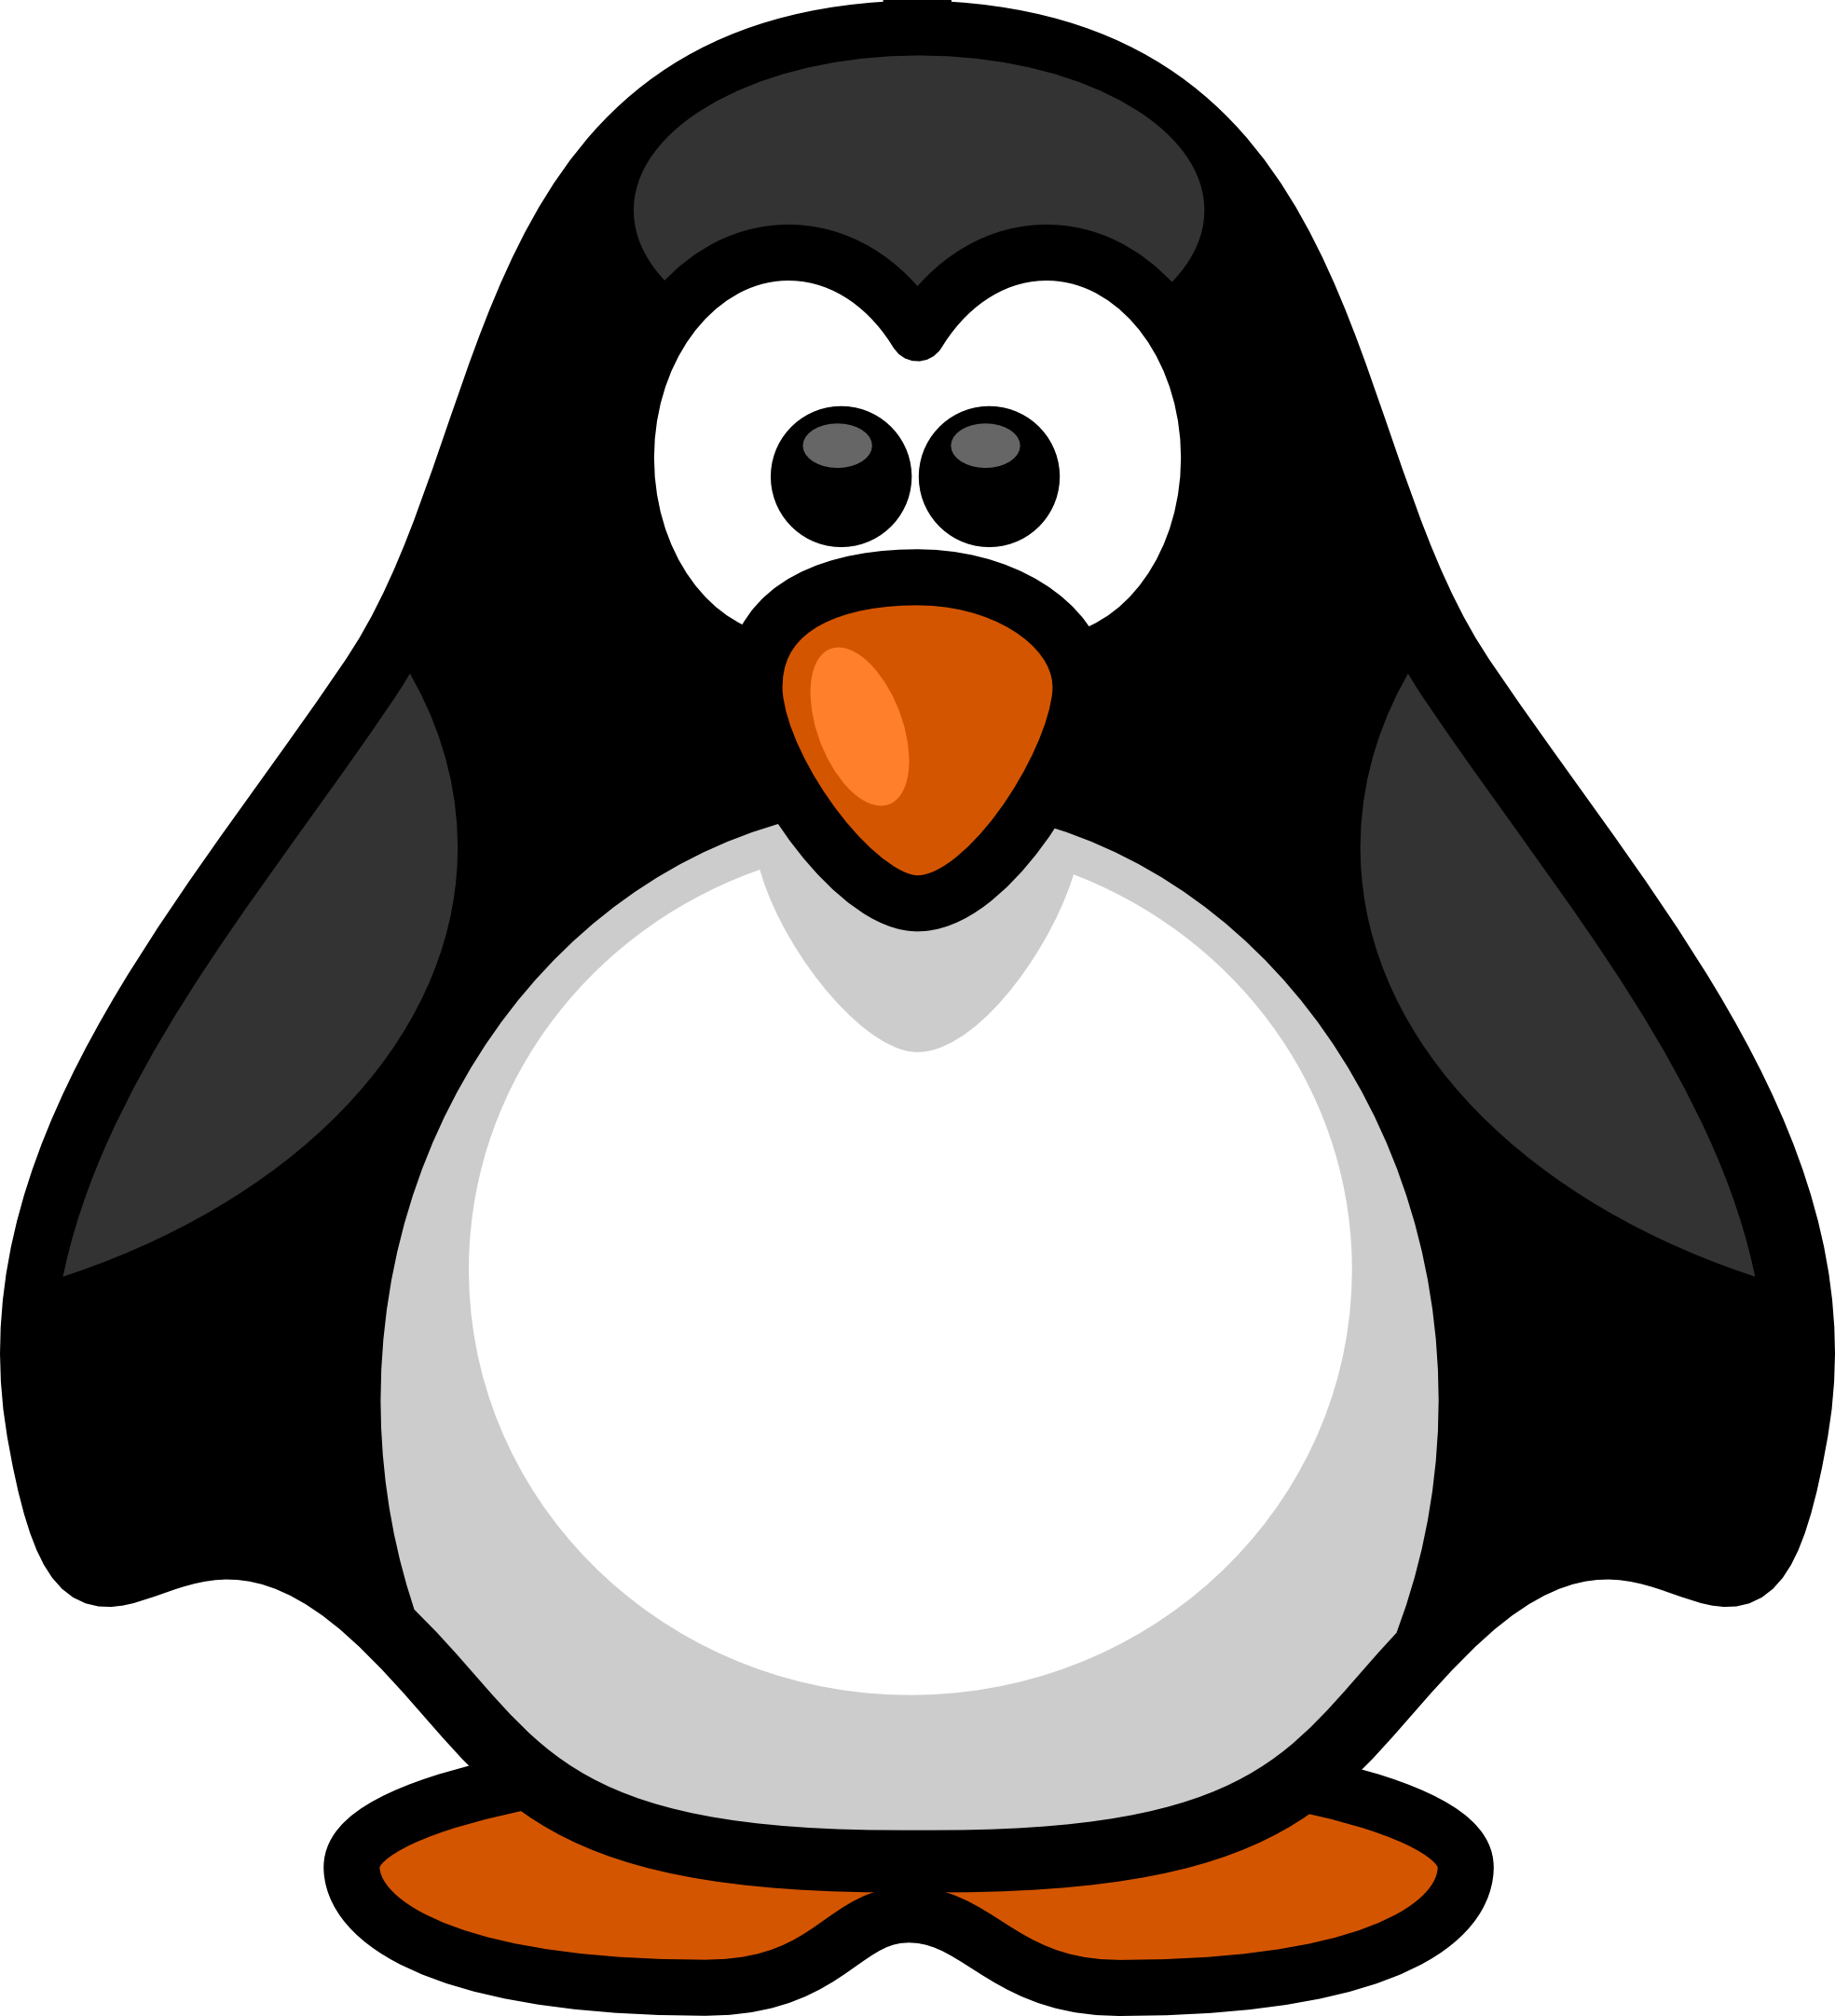 Penguin clipart picture royalty free library Best Penguin Clip Art #2701 - Clipartion.com picture royalty free library